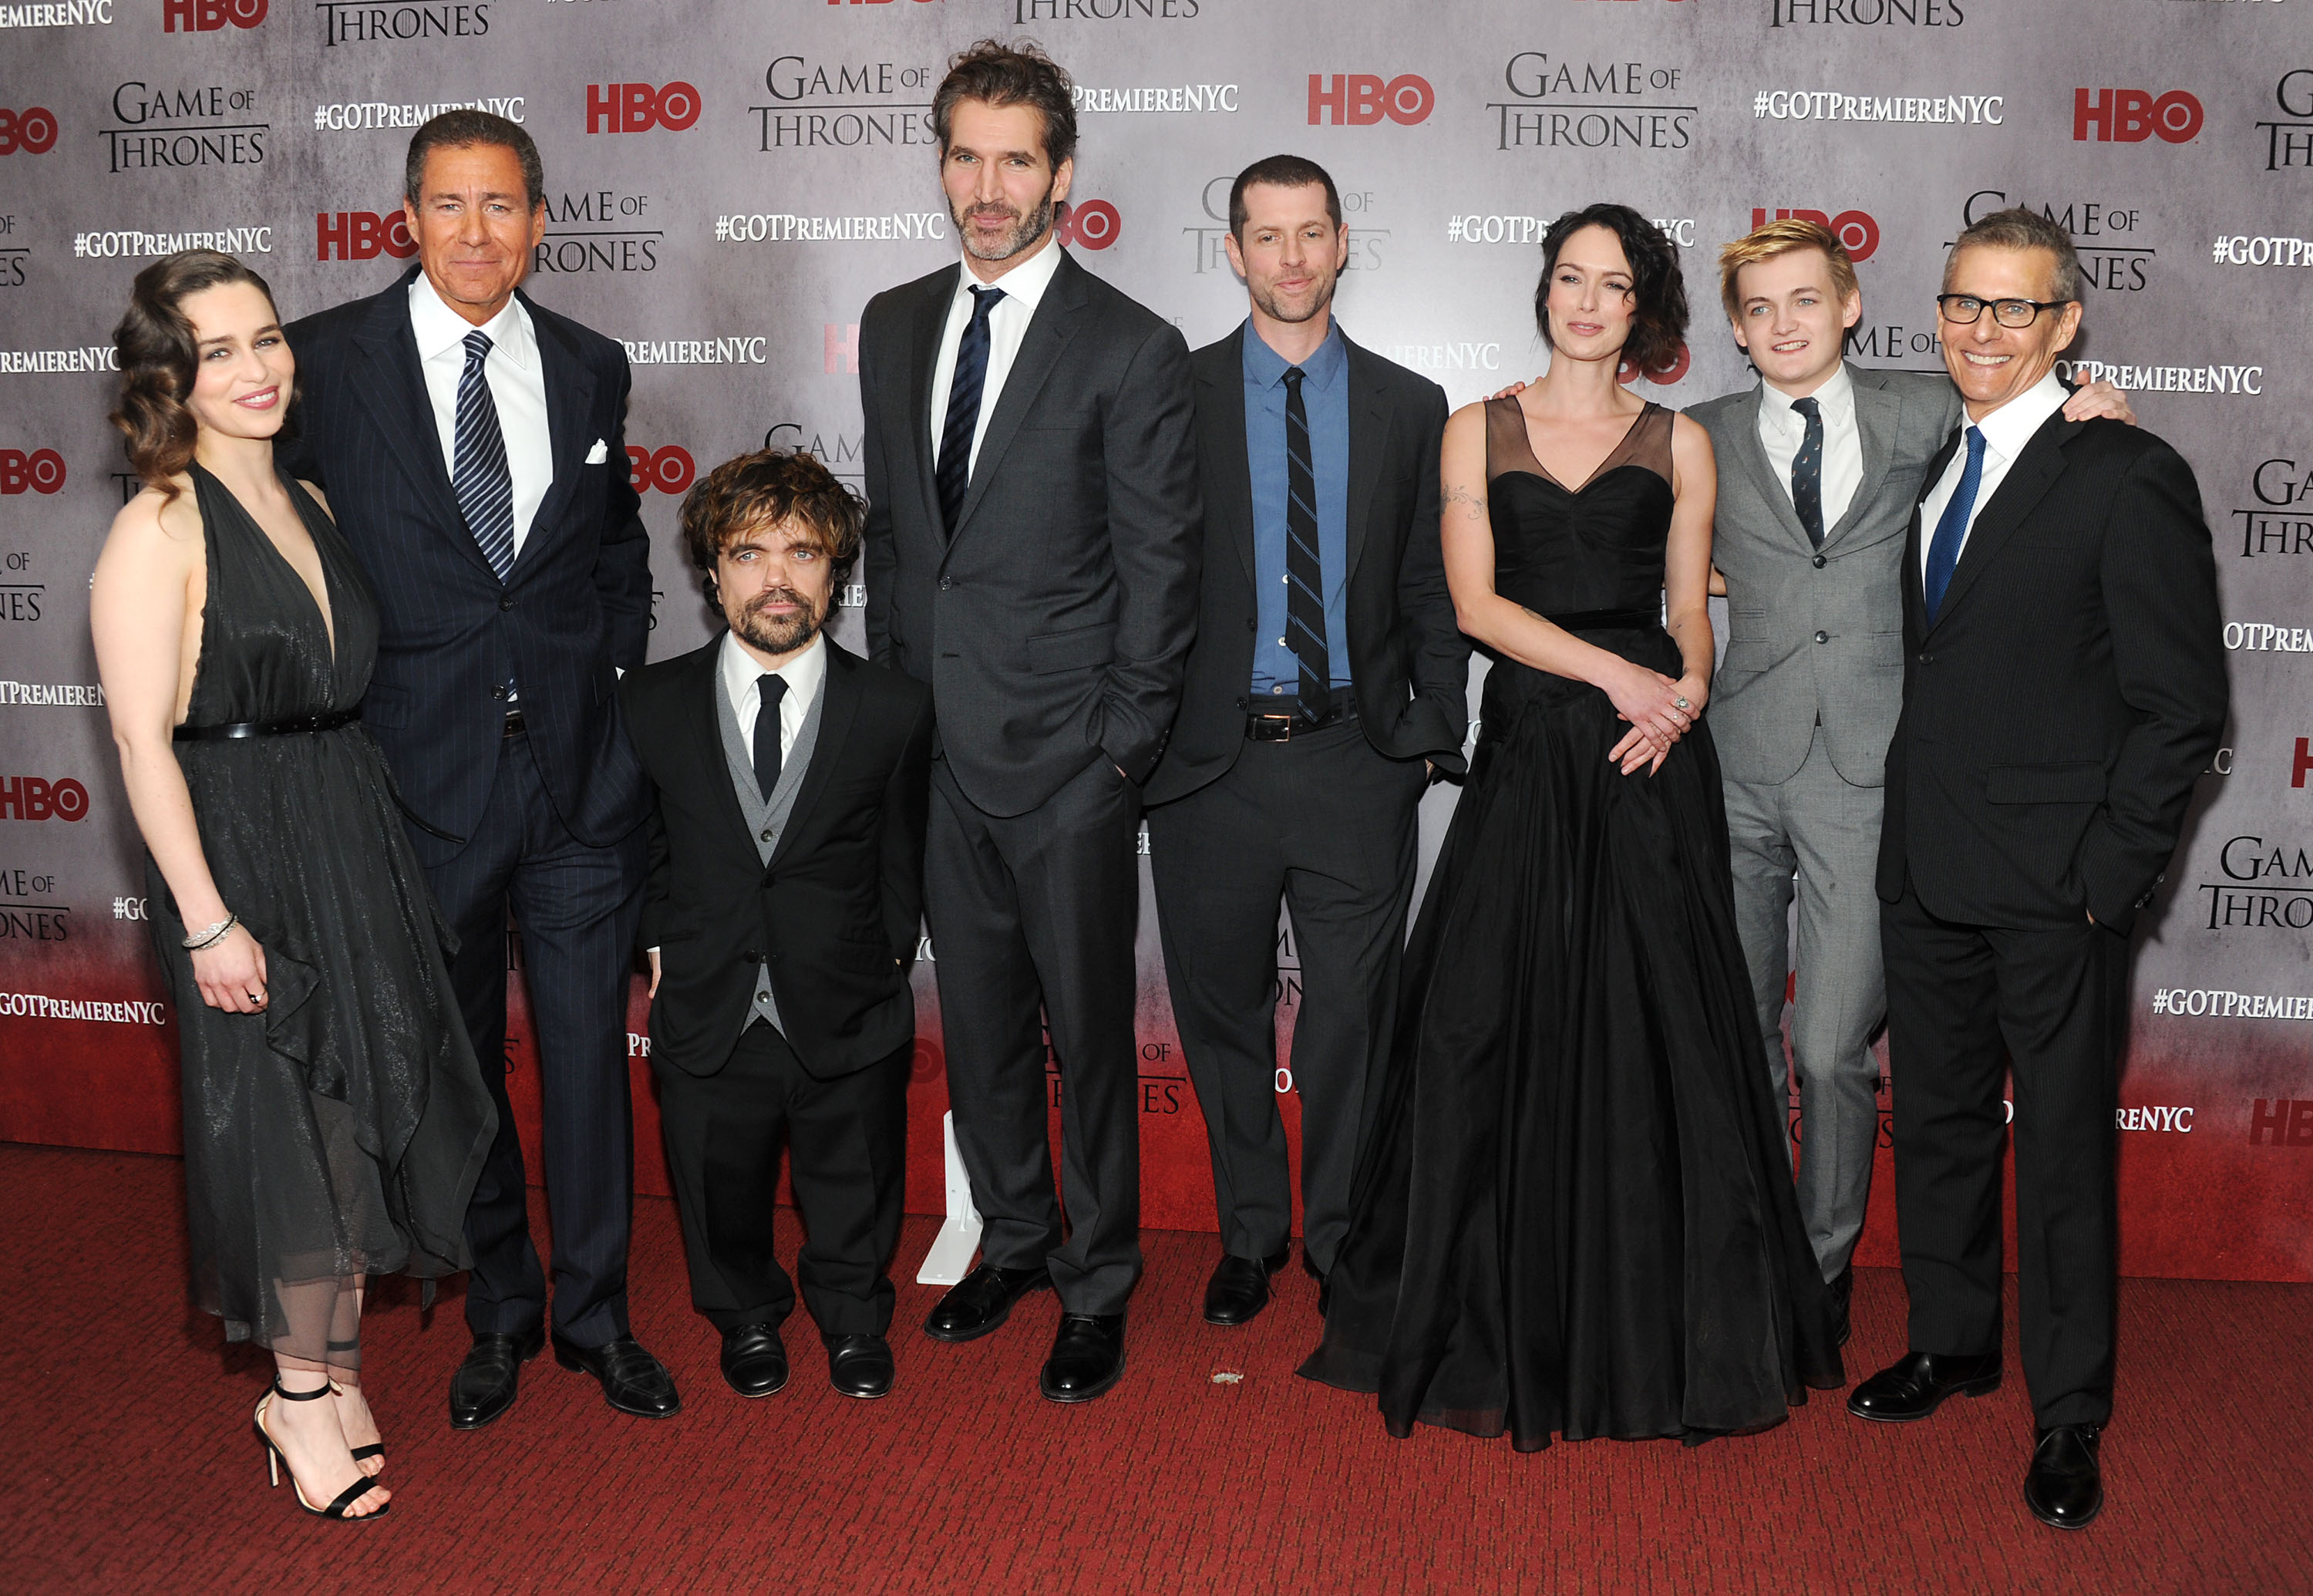 How Tall Are The Game Of Thrones Actors See How Your